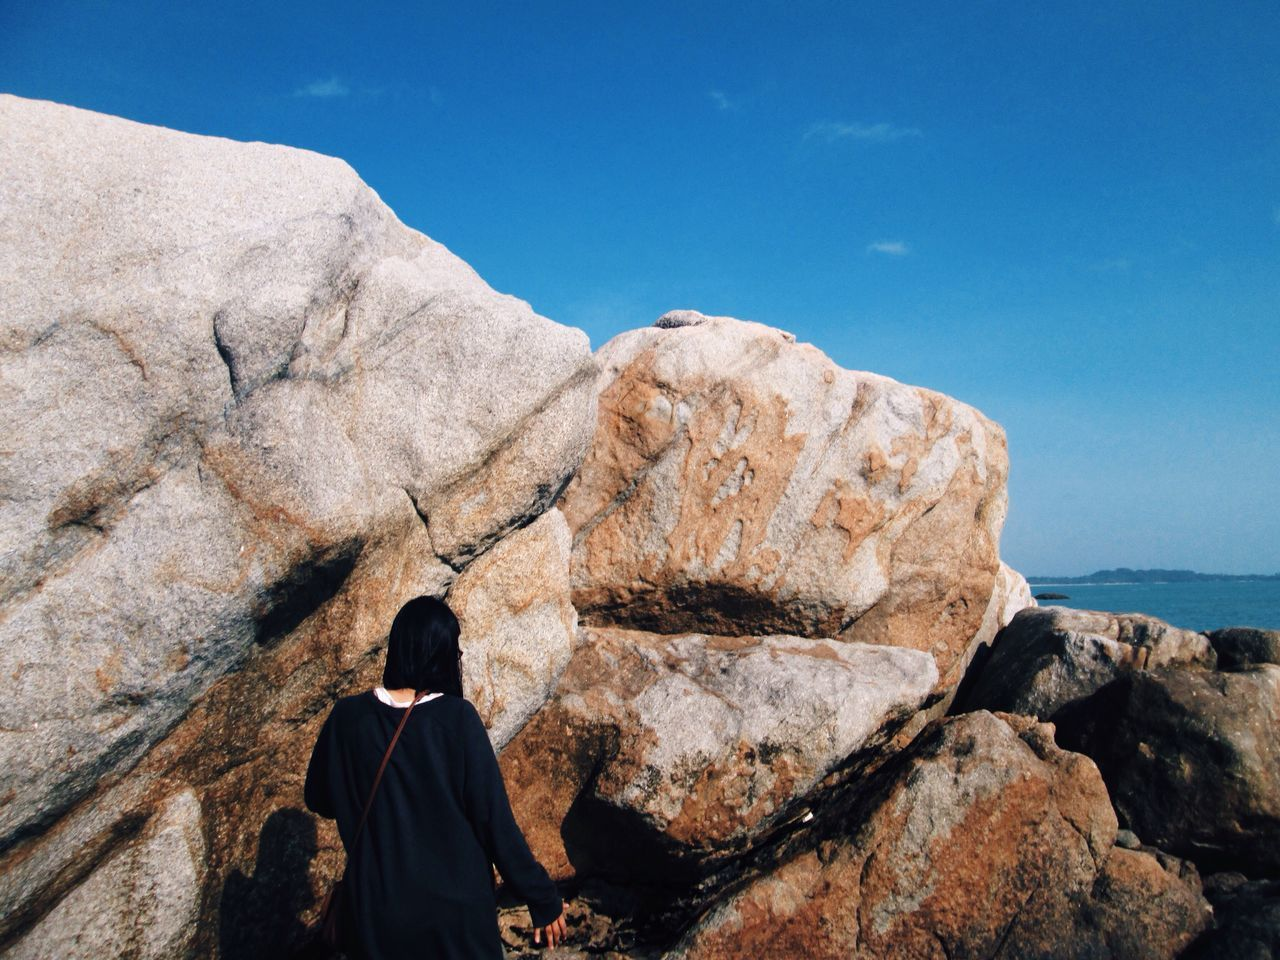 Just blue sky, rock, and sunny day. Eyeembeach Eyeemindonesia Explorebangka Beachvibes